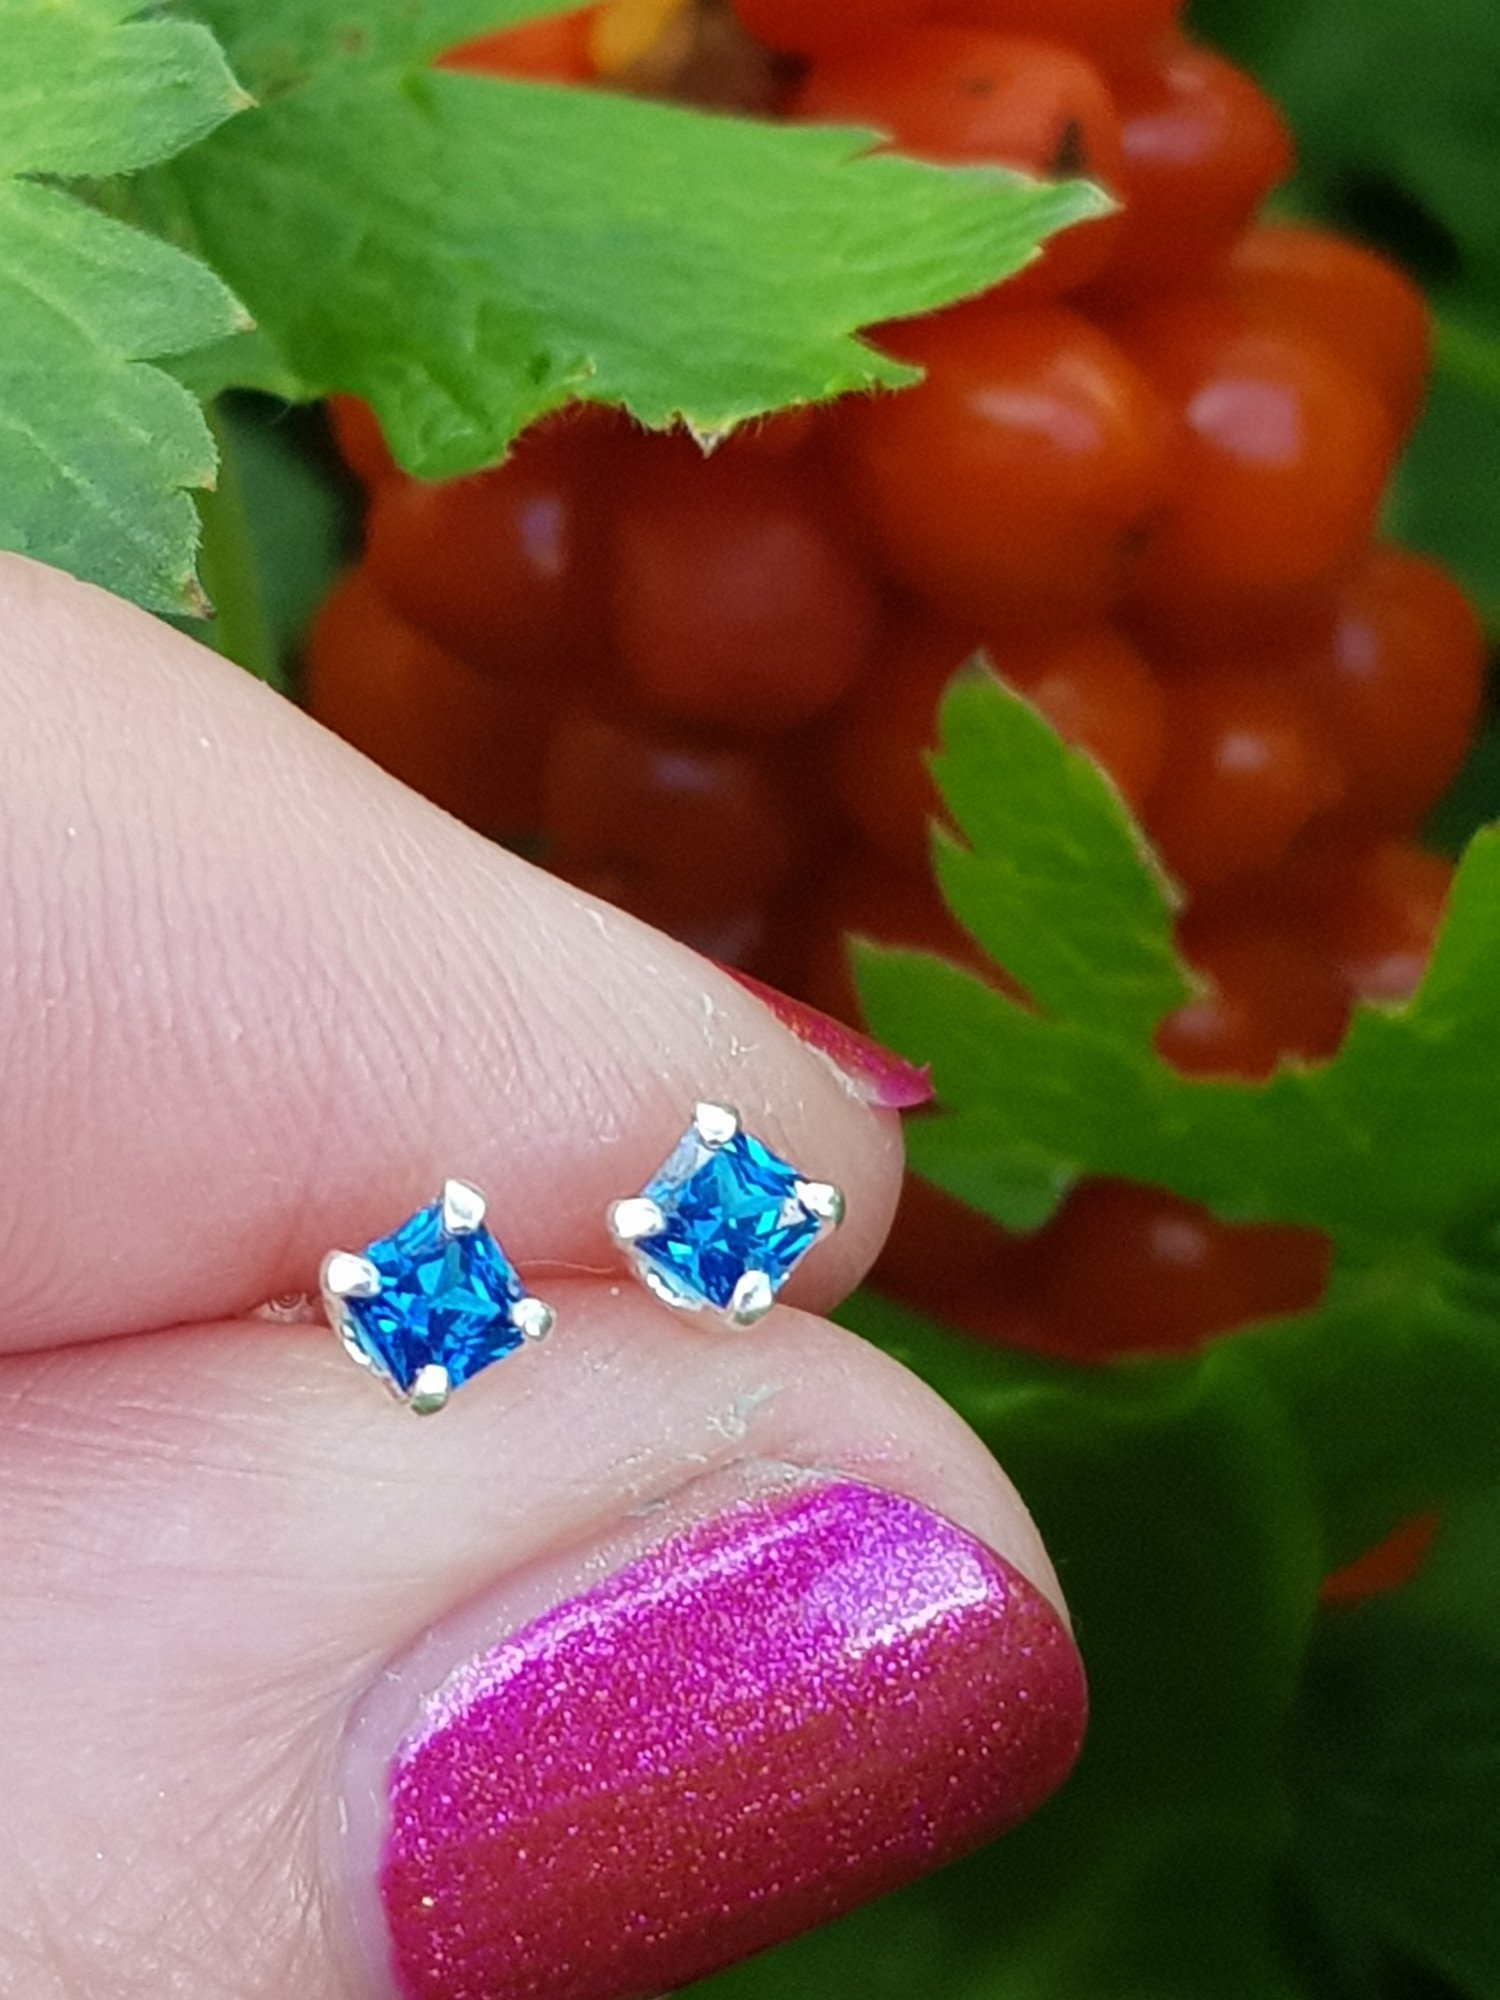 Silver, square cubic zirconia medium sapphire stud earrings - 3mm - 0.35g - ONLY £6.25